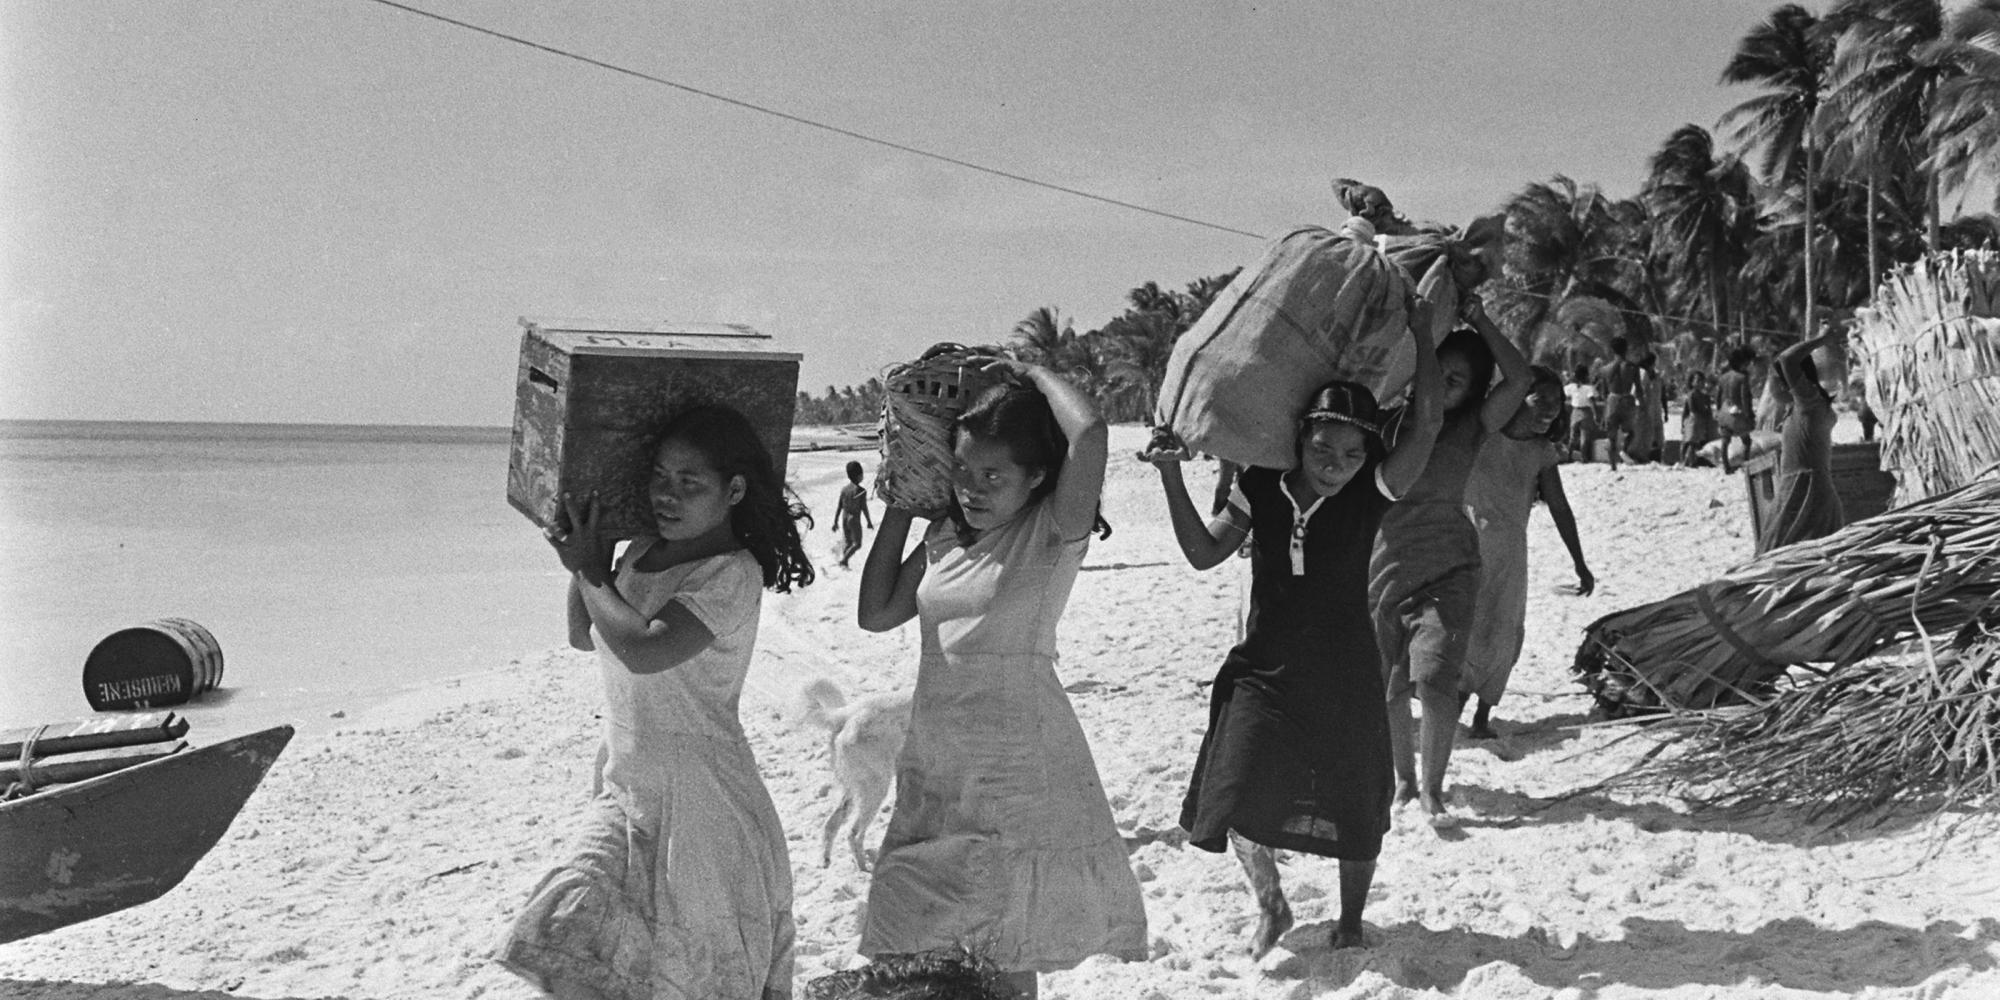 A group of women carry boxes and bags across a beach.